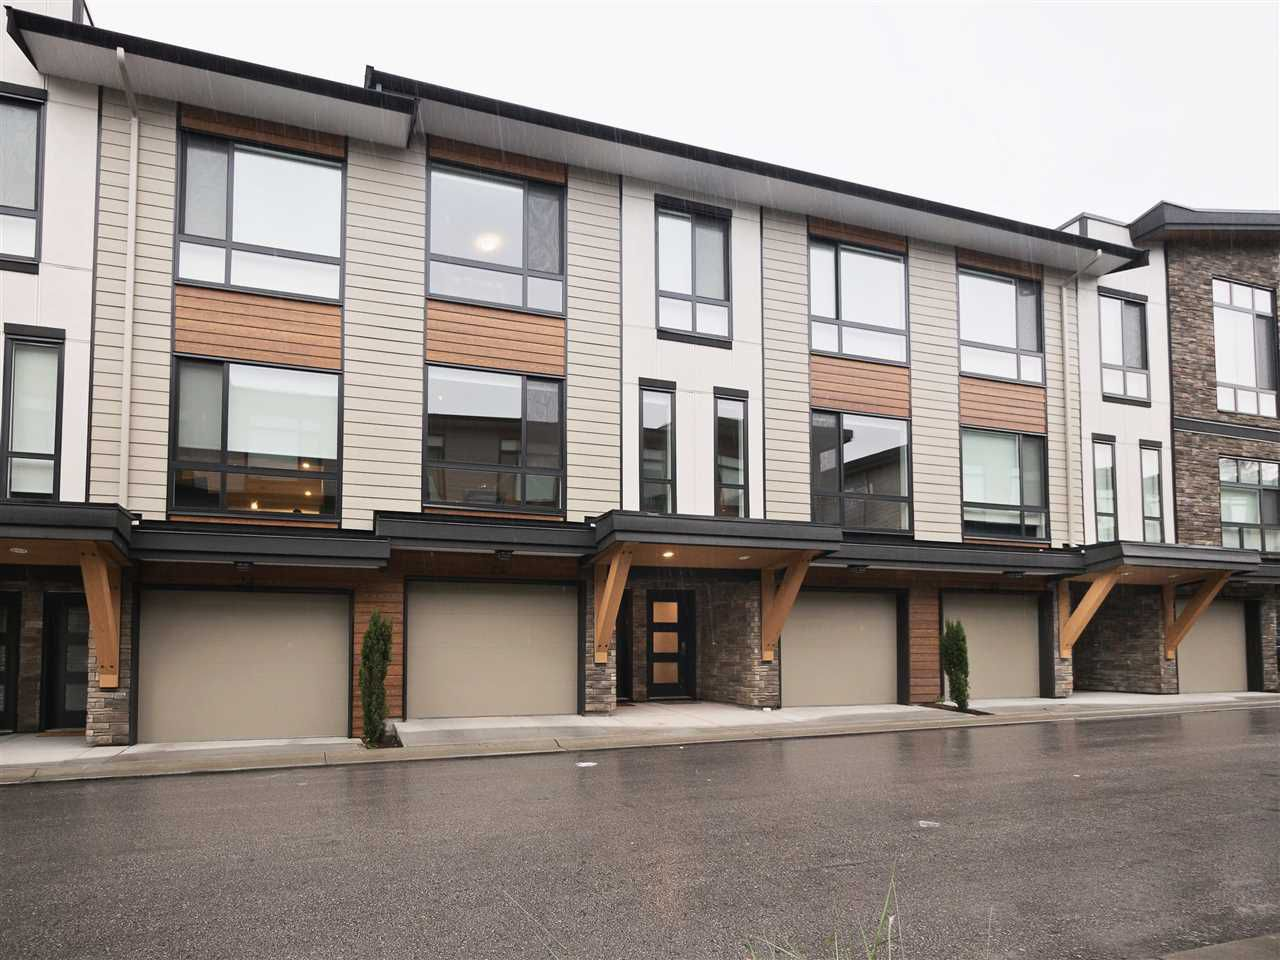 Main Photo: 25 16488 64 AVENUE in Surrey: Cloverdale BC Townhouse for sale (Cloverdale)  : MLS®# R2220408